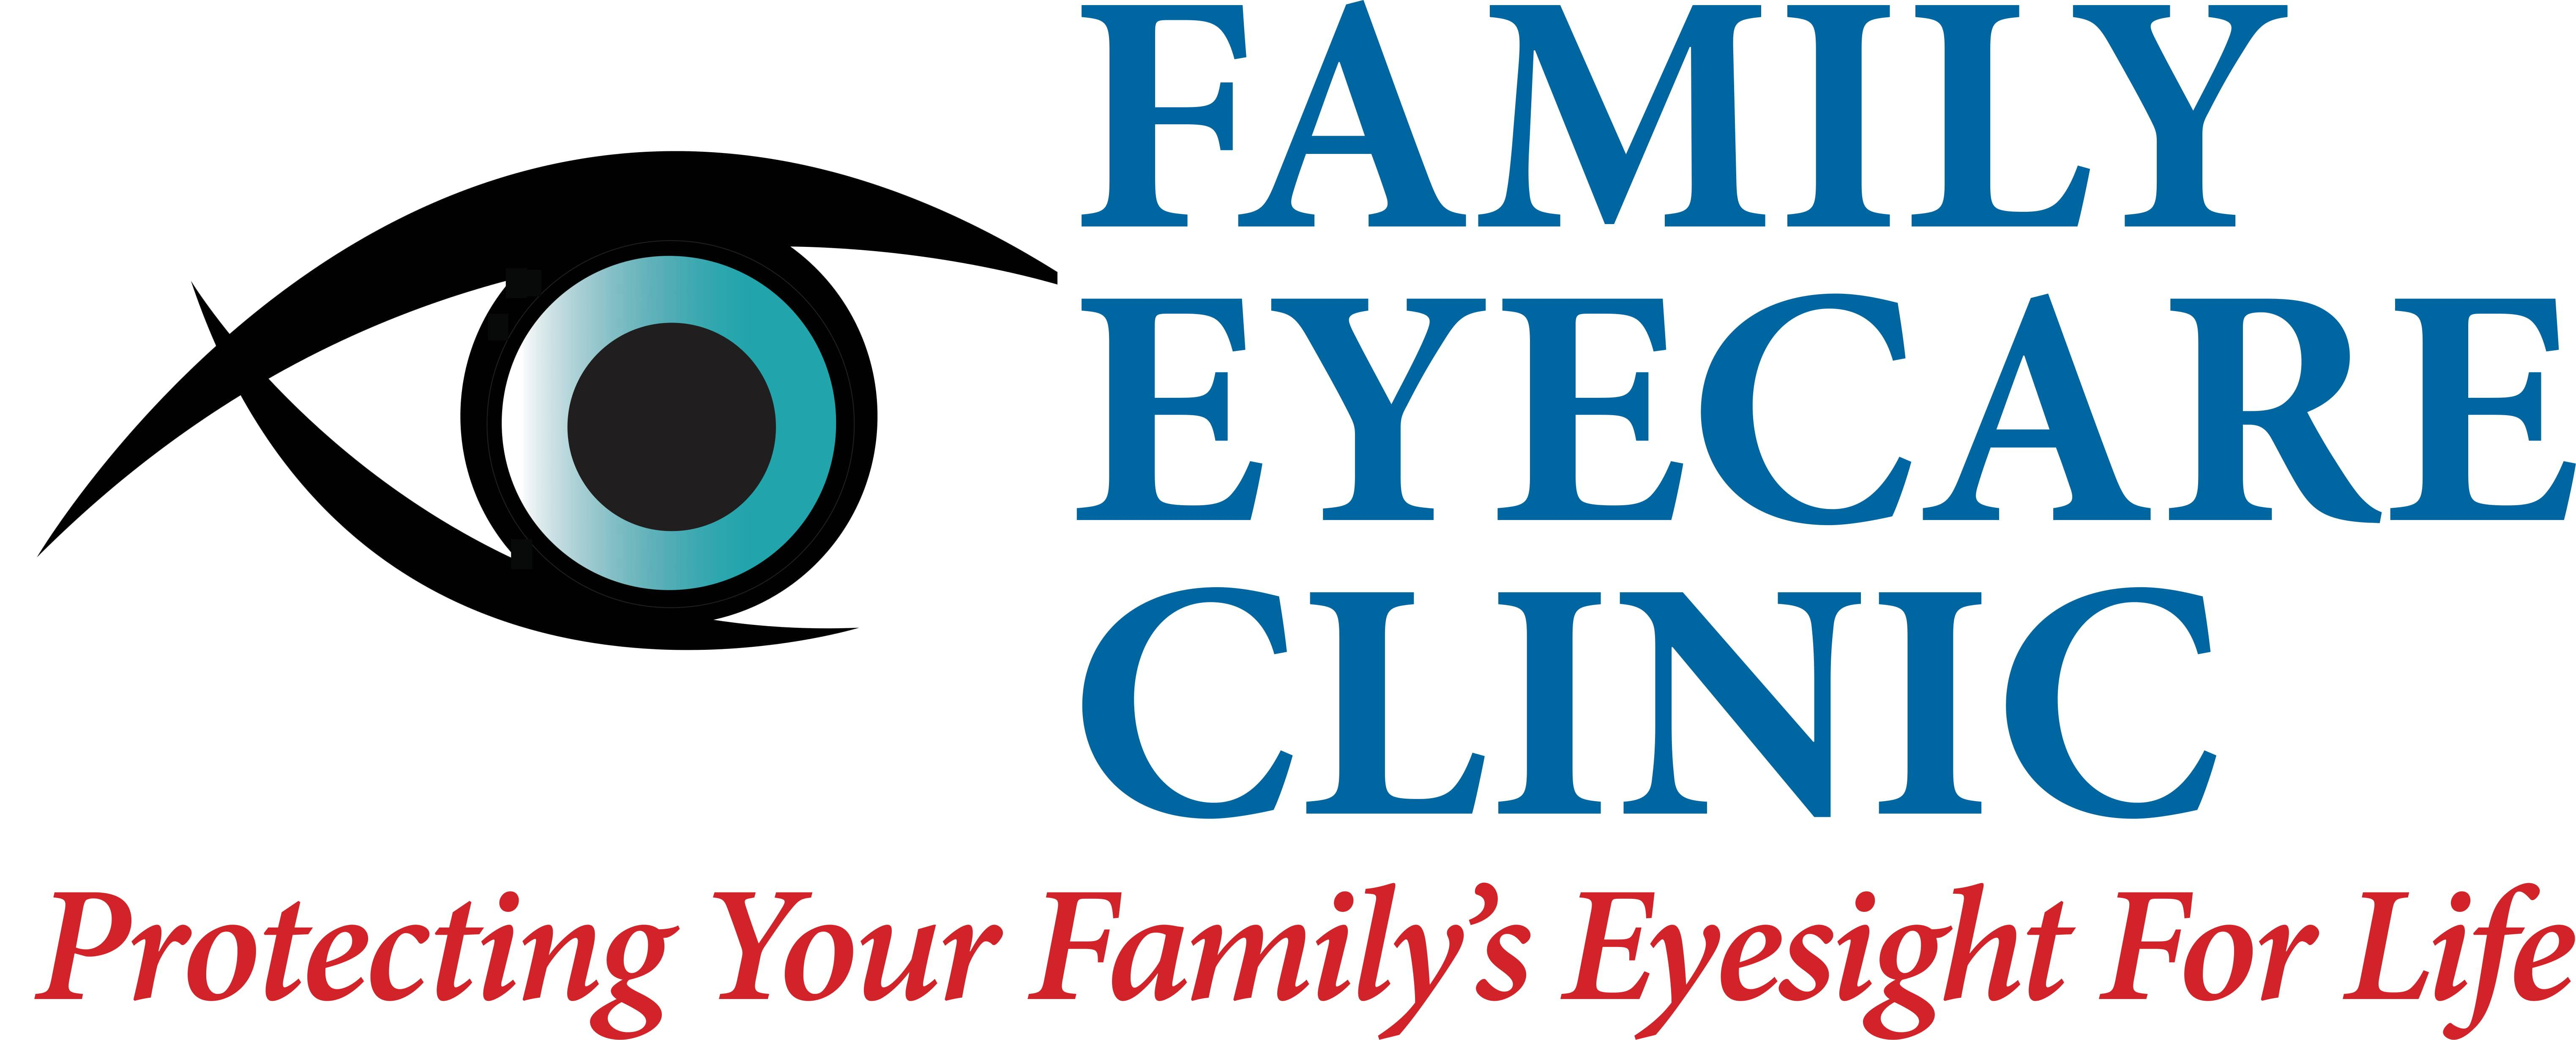 Family Eyecare Clinic